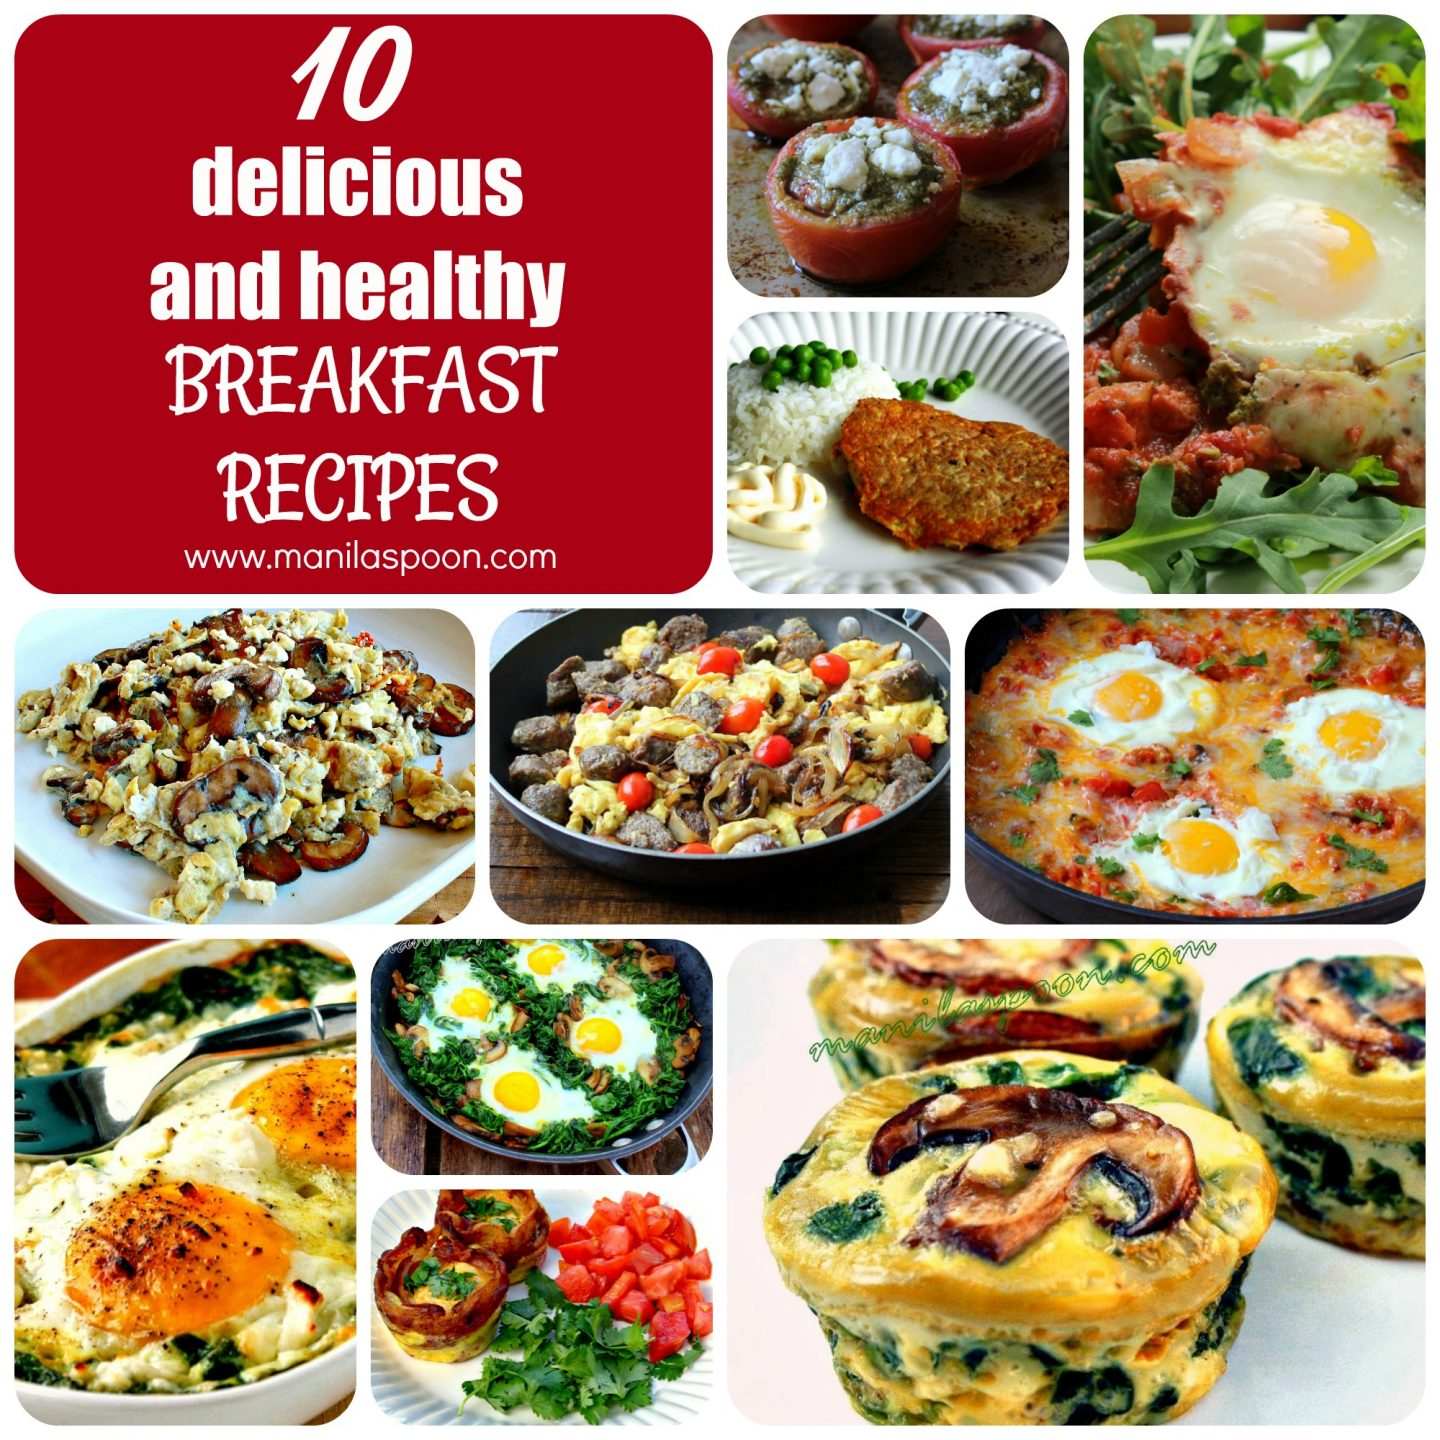 10 delicious and healthy breakfast or brunch recipes to help you start the year right! Completely low-carb, gluten-free and keto-friendly!